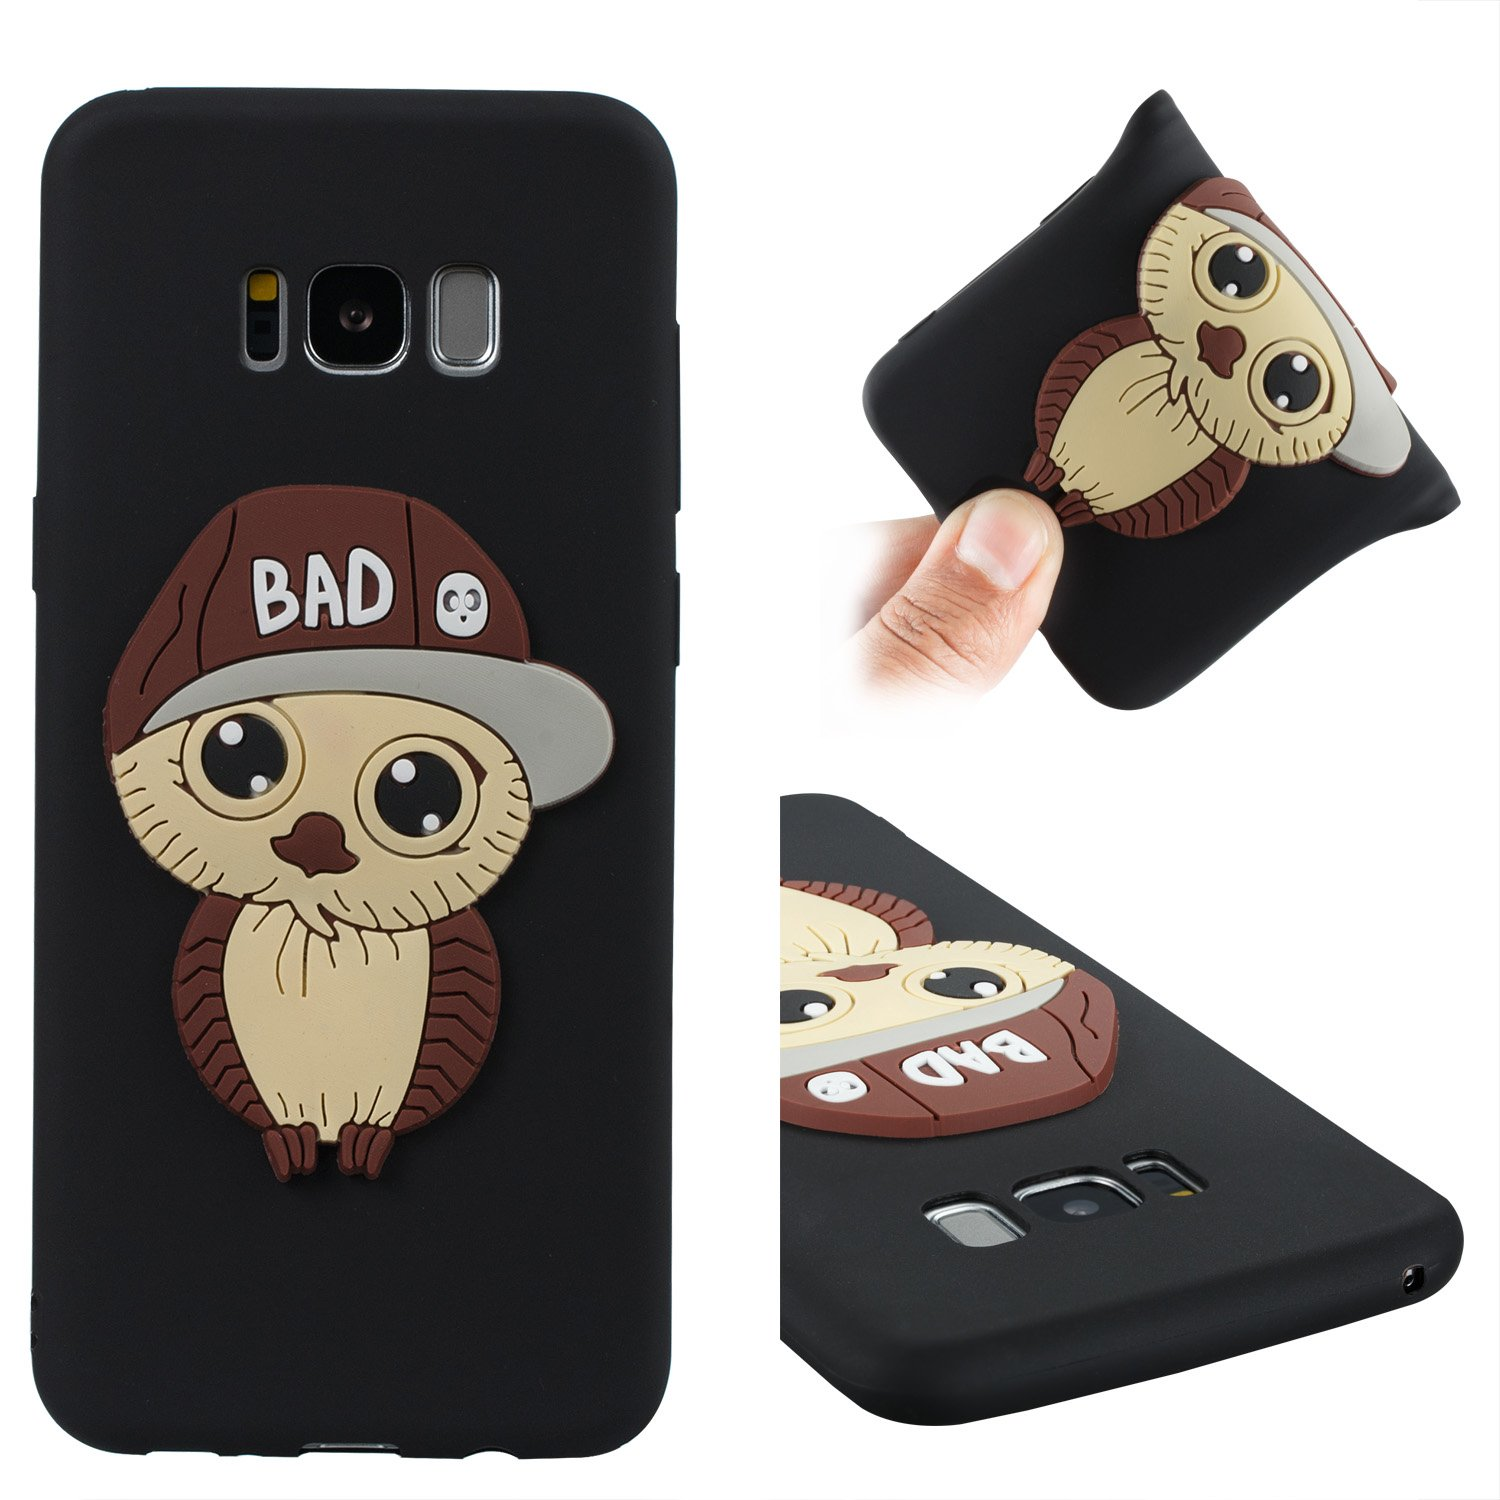 Galaxy S8 Plus Case,DAMONDY 3D Cute Cartoon Owl Pattern Soft Silicone Gel Slim Design Rubber Thin Protective Cover Phone Case for Samsung Galaxy S8 Plus -black